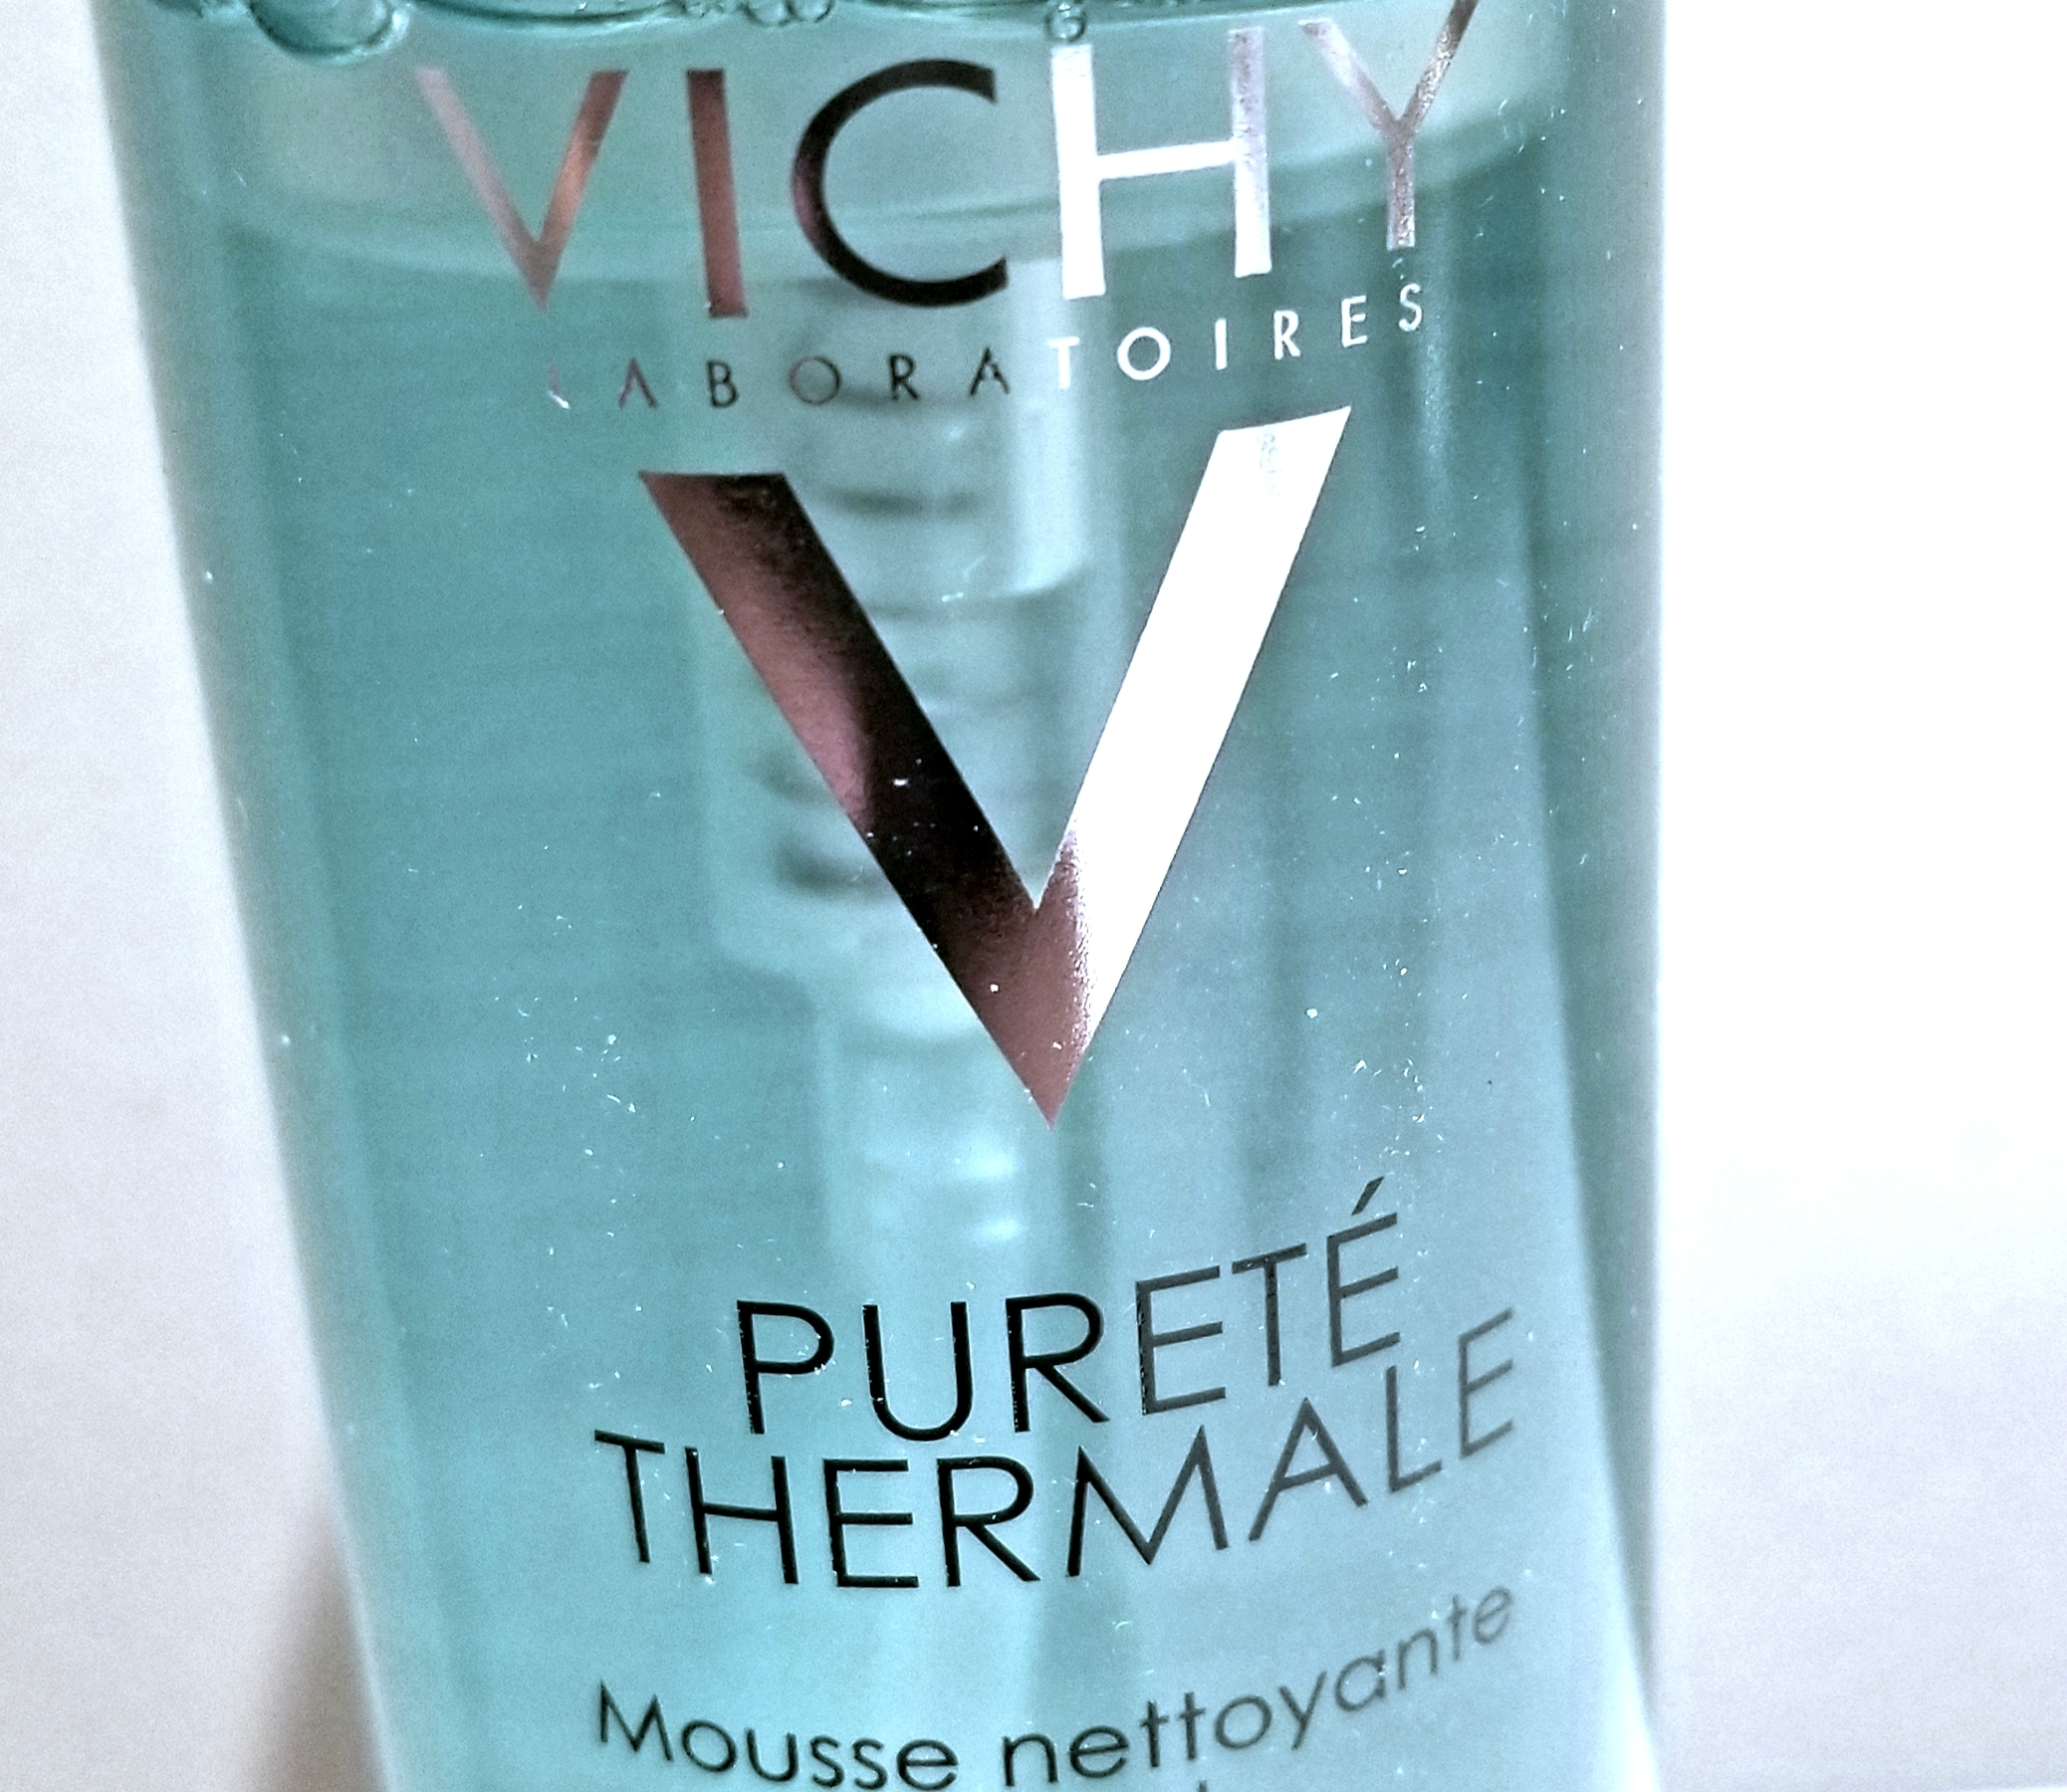 Vichy Purete Thermale Purifying Foaming Cleanser Melissas Musings Jill Beauty Cleansing Foam